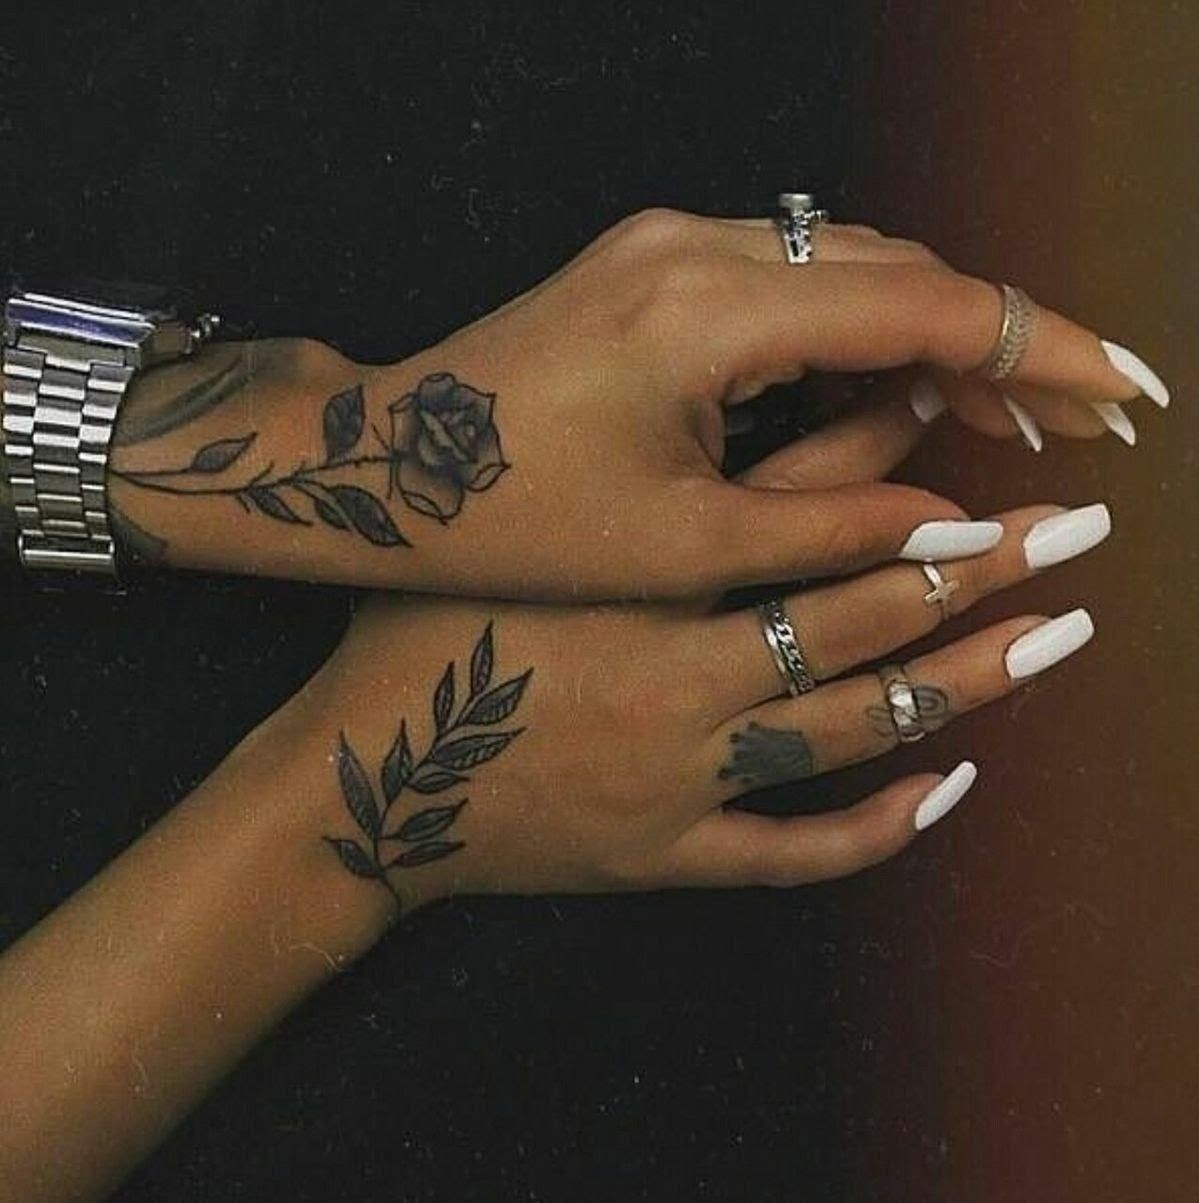 Pin By Mia Johns On Tattoo Ideas With Images Hand Tattoos